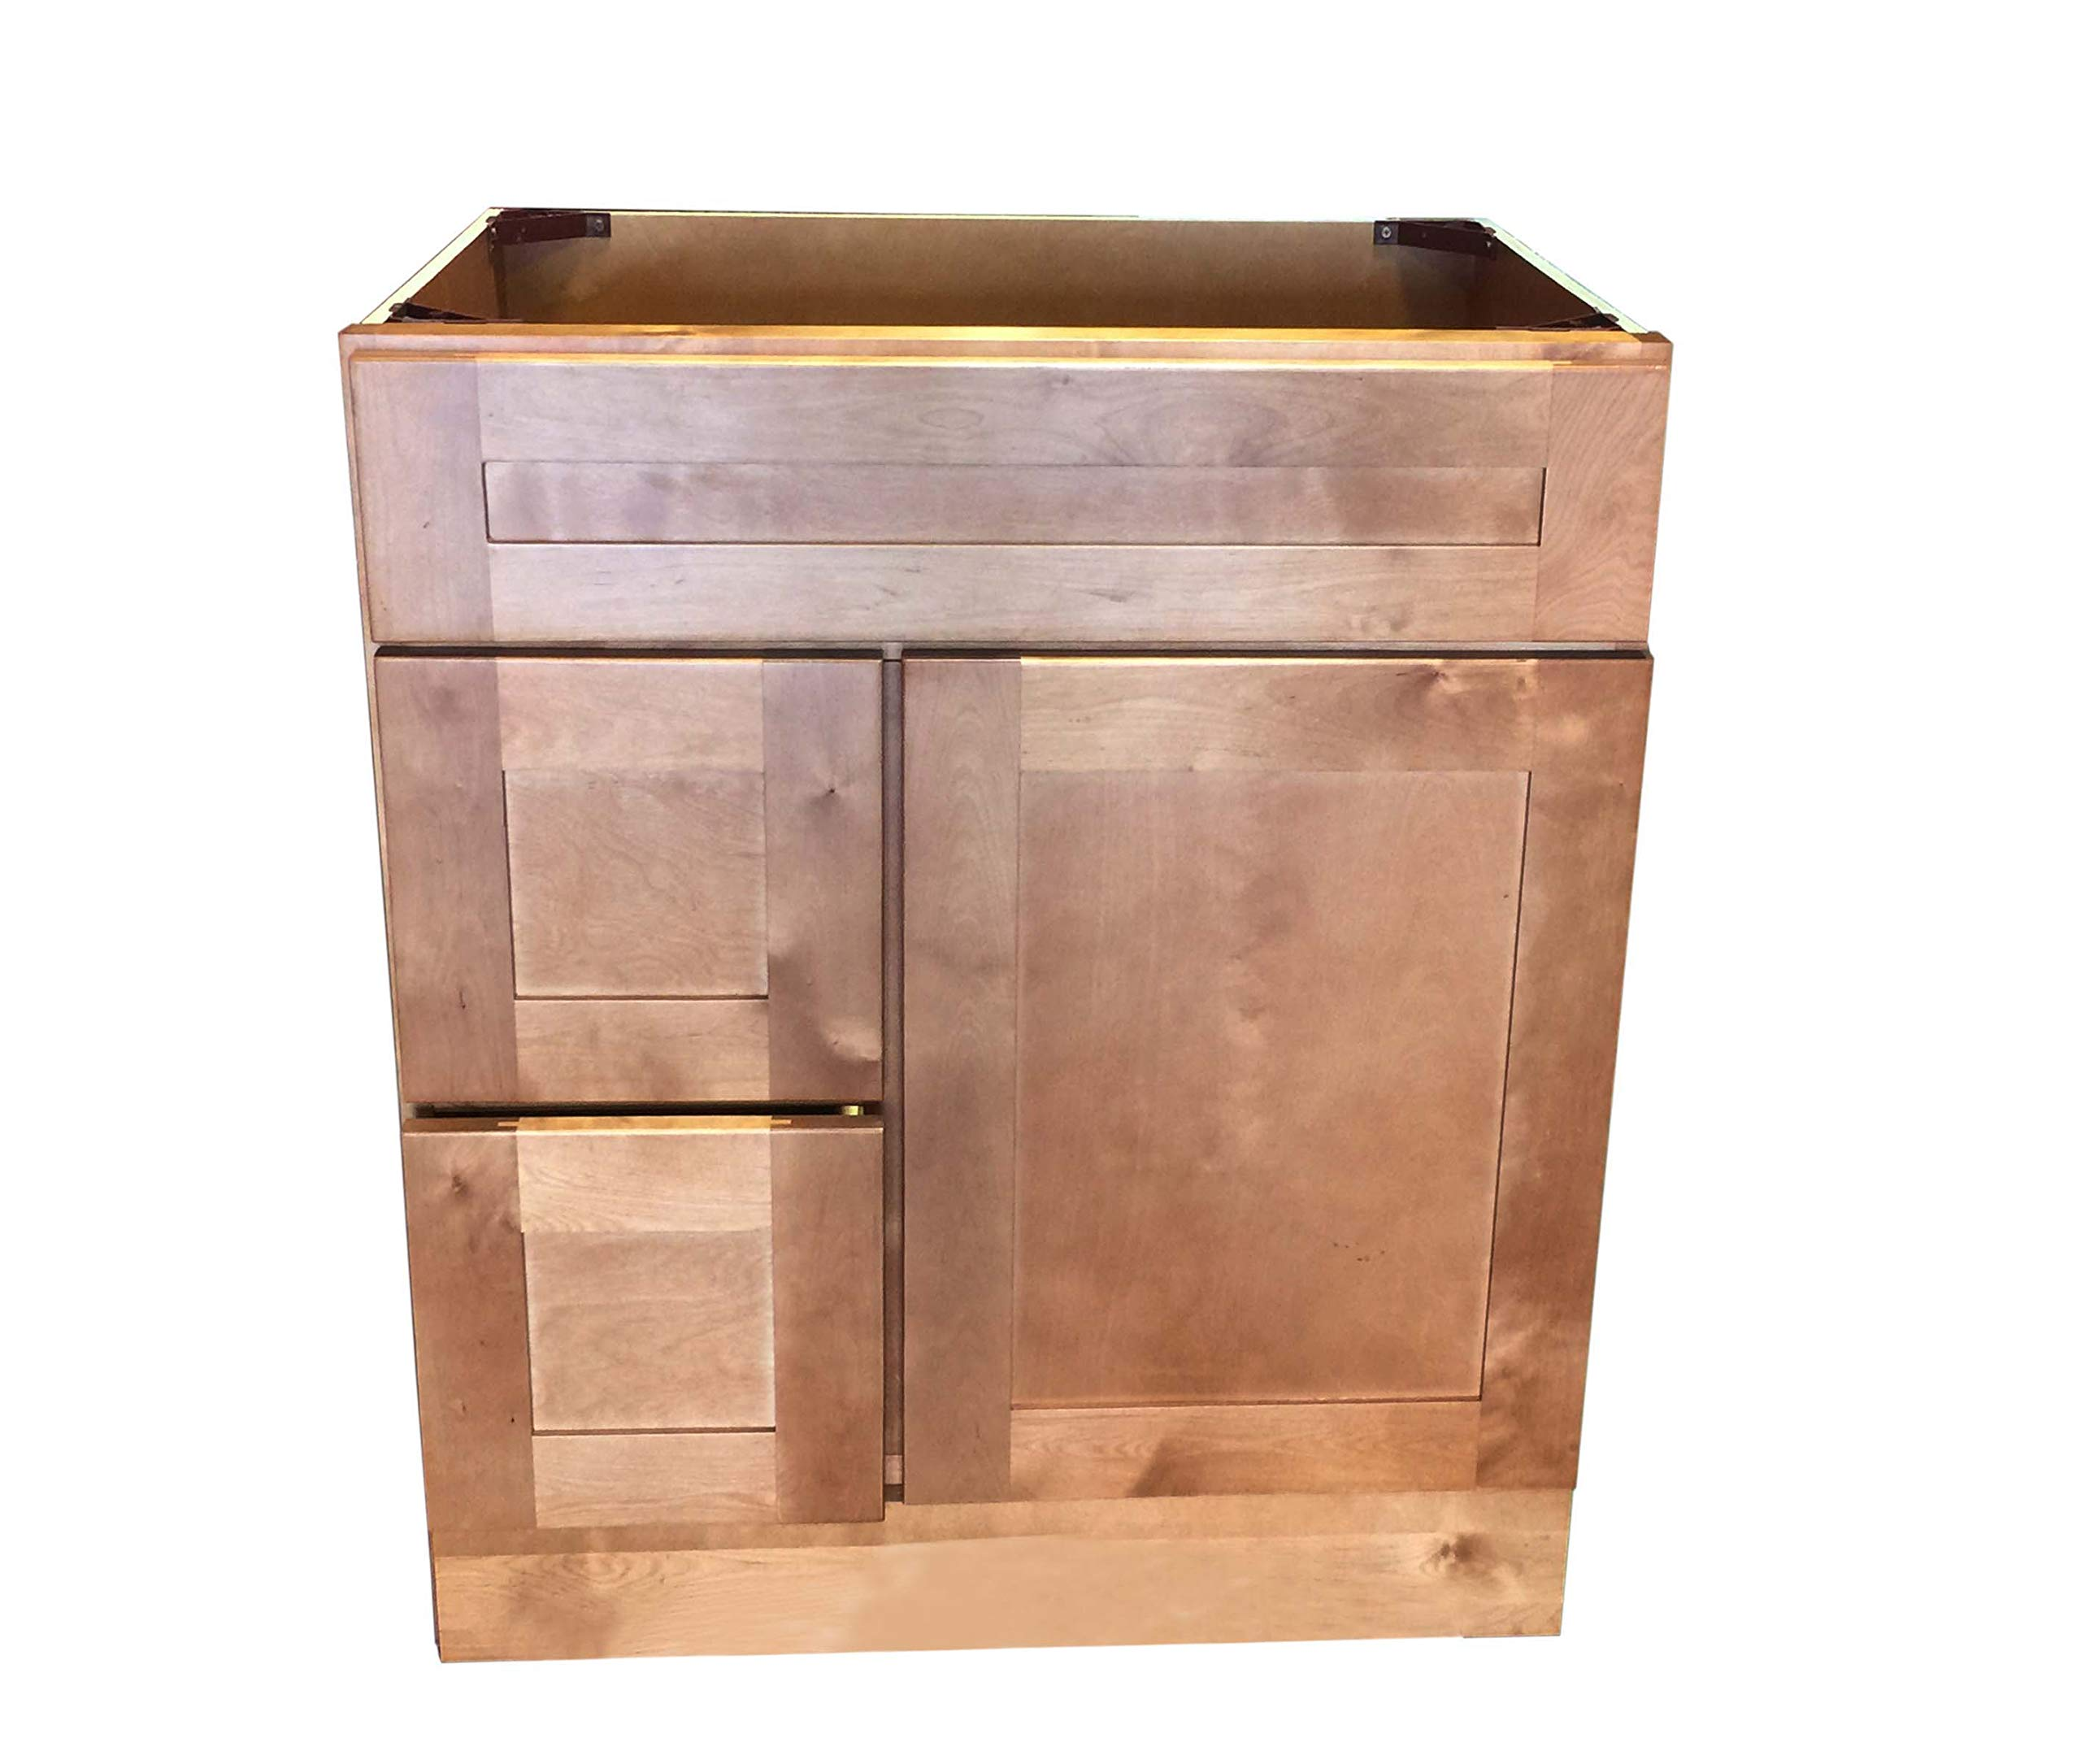 "New Maple Shaker Single-sink Bathroom Vanity Base Cabinet 30"" Wide x 21"" Deep MS-V3021DL/R - Maple Shaker Cabinet 30"" W x 21"" D x 34.5"" H assembly needed , Handles are not including !! Solid wood with hardwood plywood construction,Made of wood - bathroom-vanities, bathroom-fixtures-hardware, bathroom - 71oWY4G9n6L -"